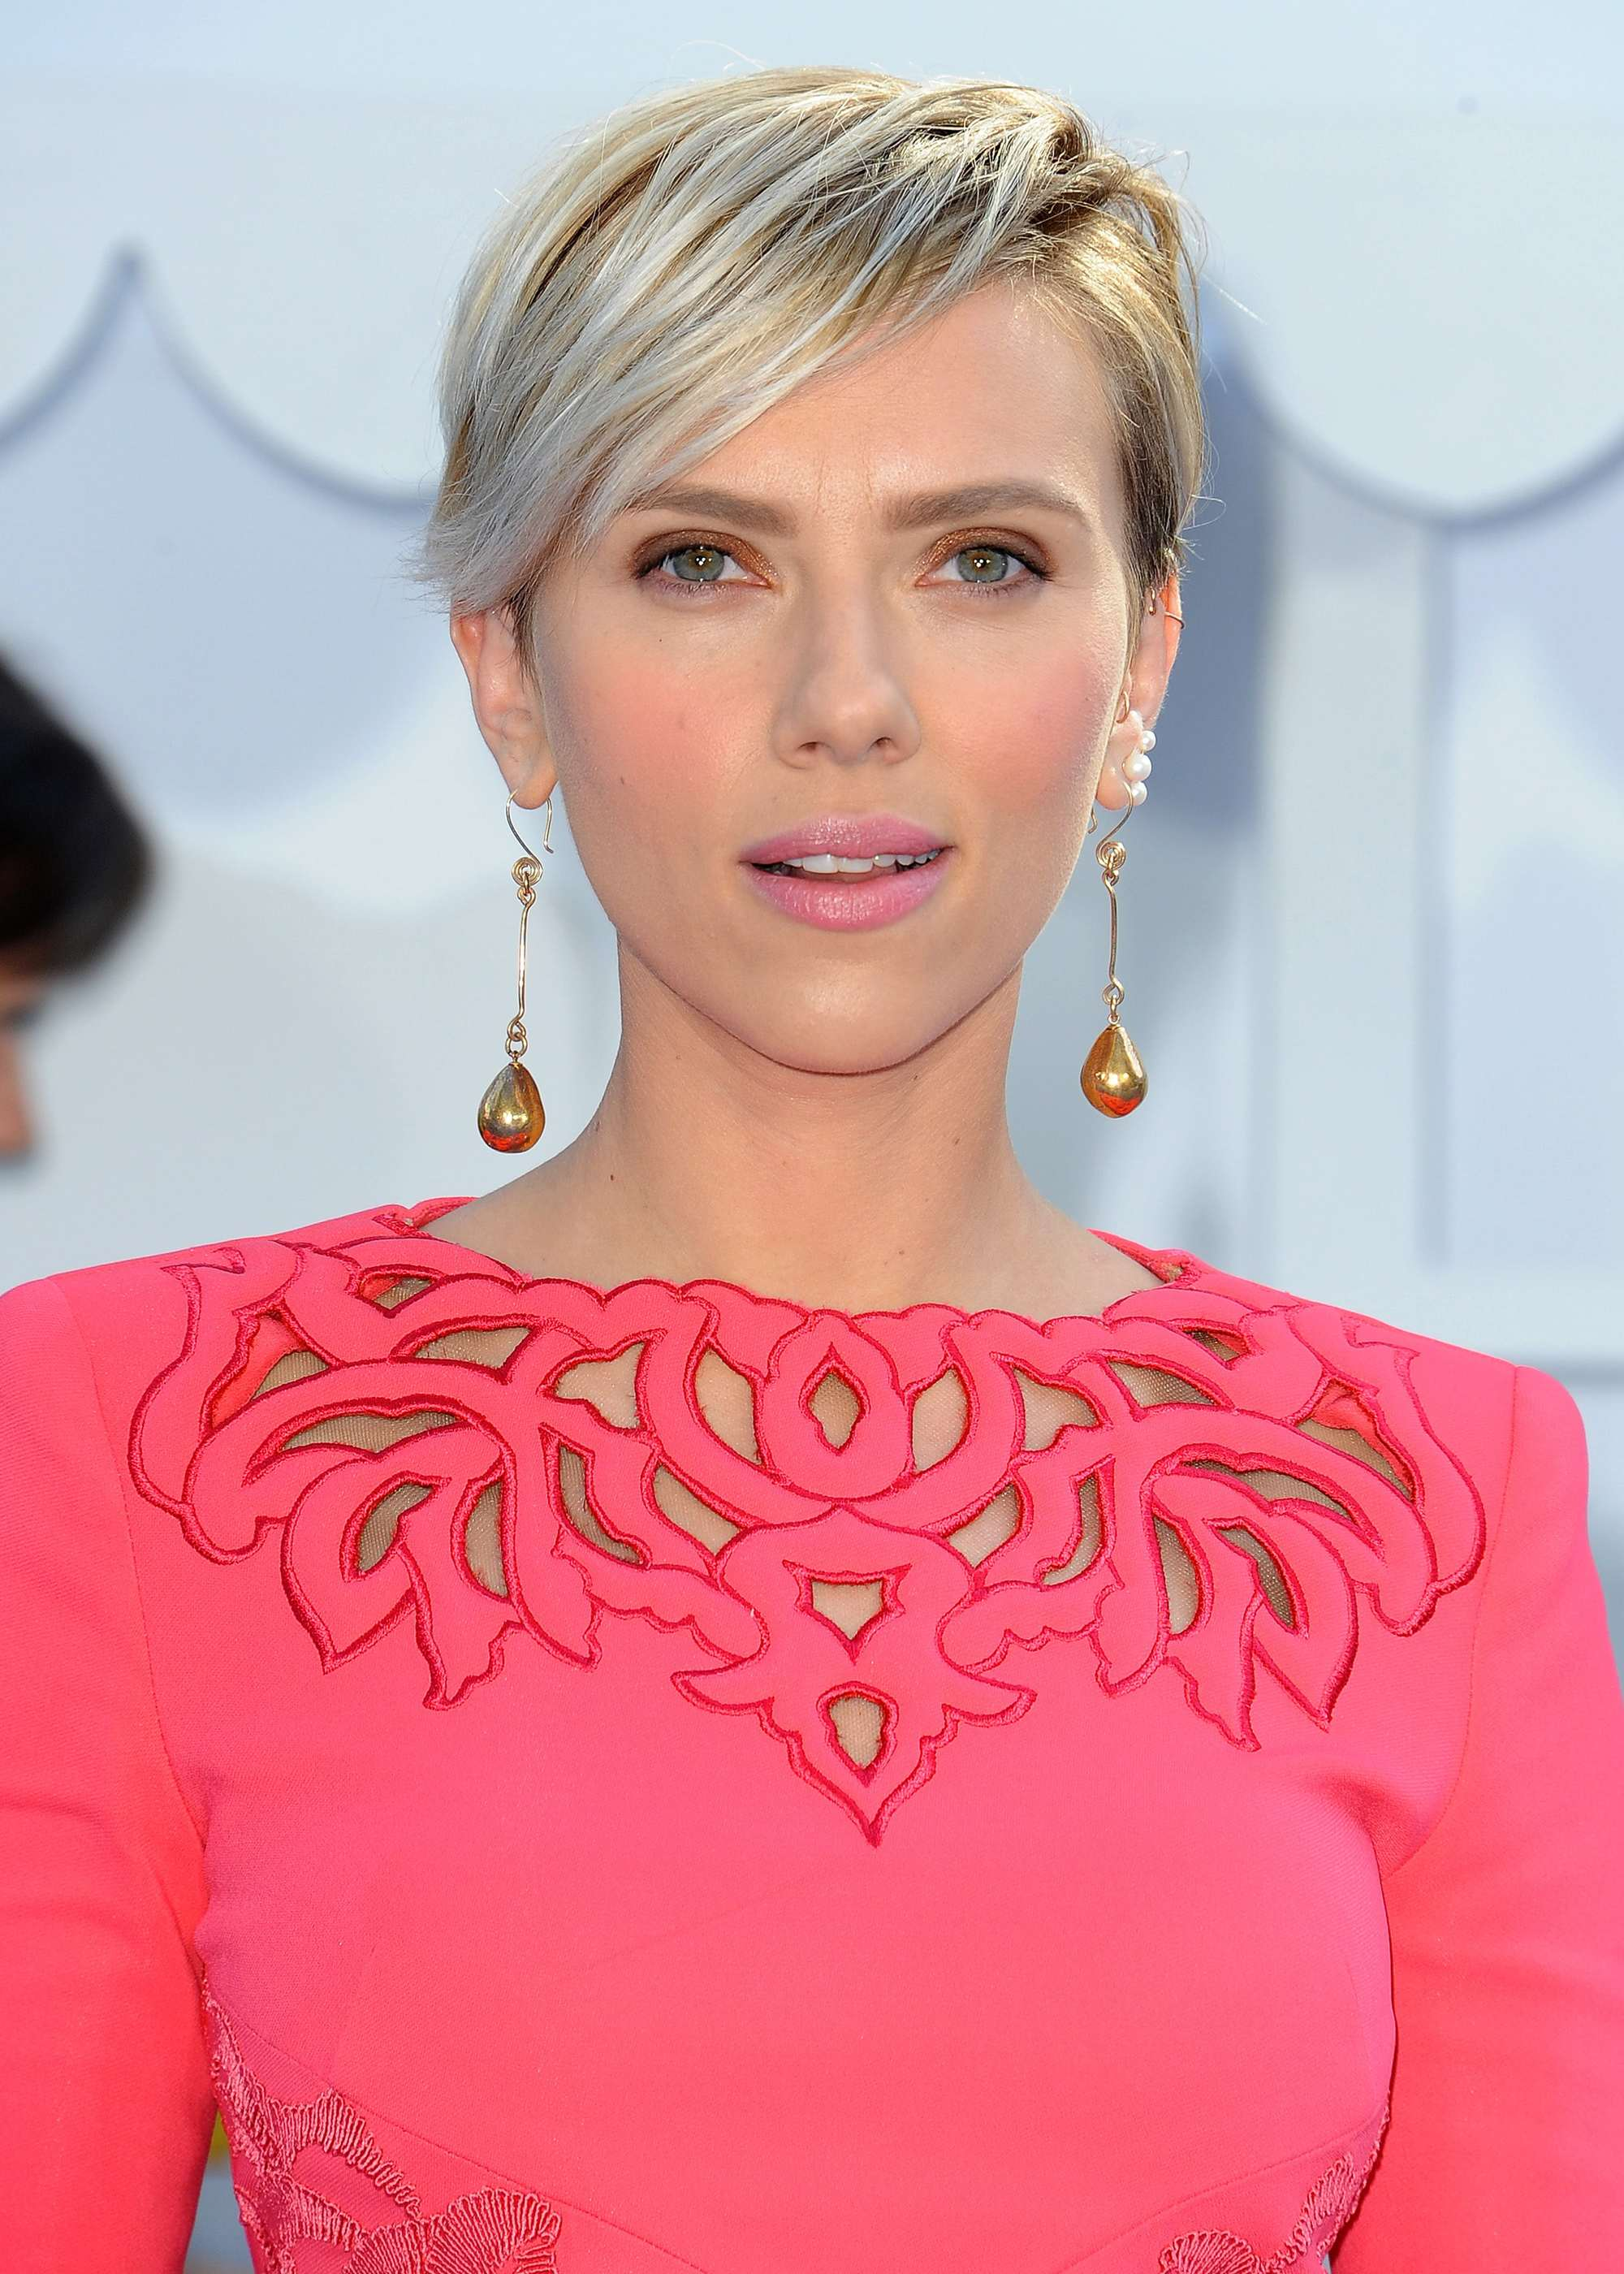 8 Timeless Pixie Cut With Bangs Combinations All Things Hair